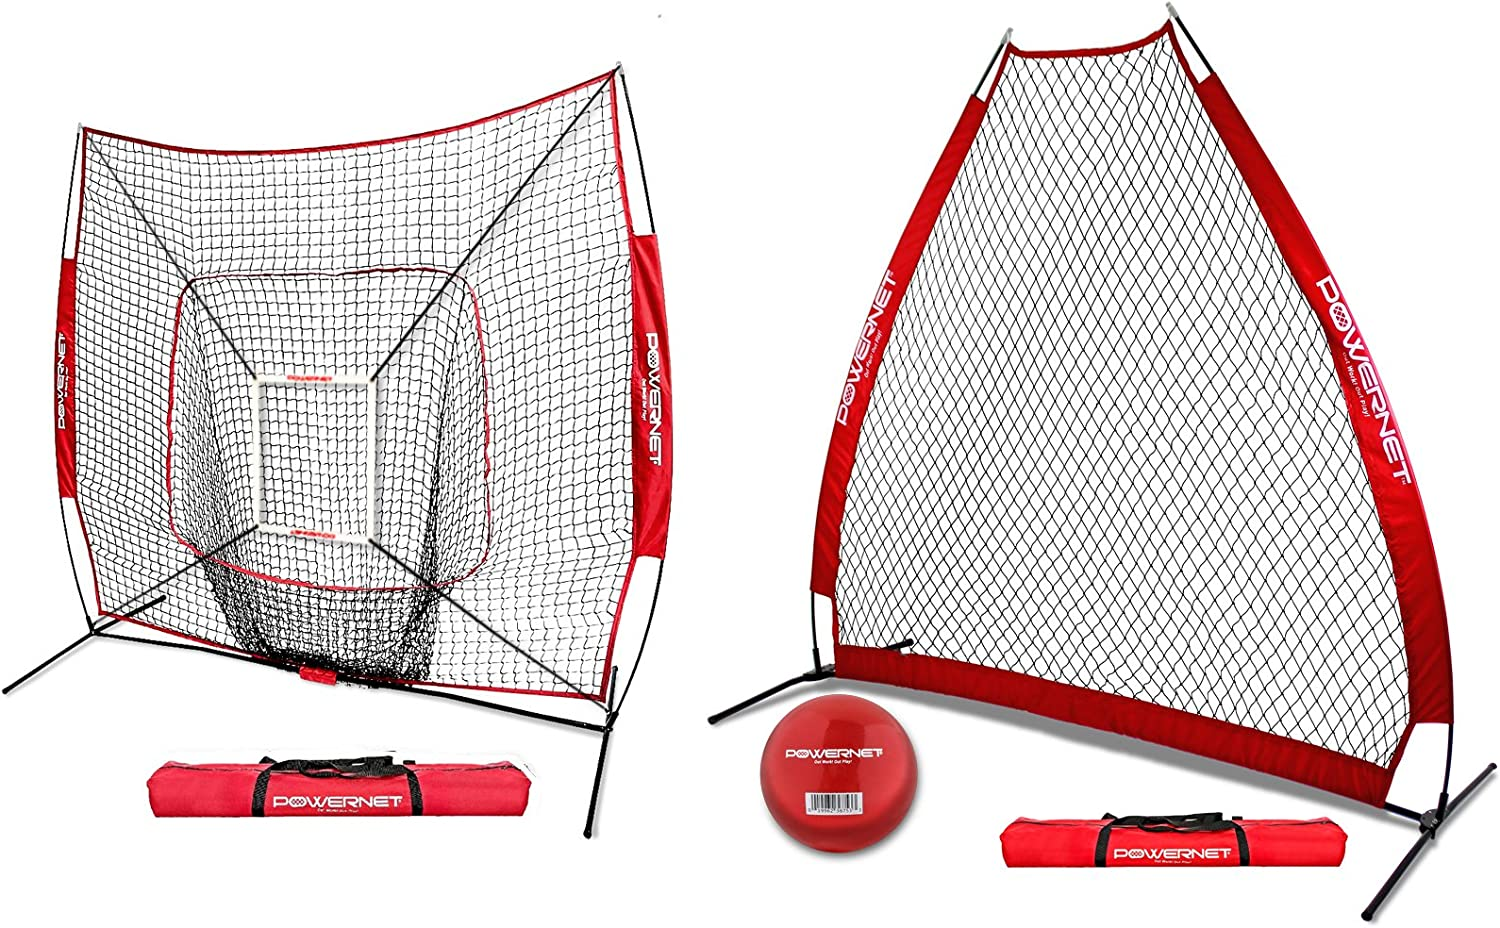 PowerNet 7×7 DLX Net and Portable Pitching A-Frame Screen Bundle Baseball Pitching Protection Weighted Training Ball Instant Pitcher Protection from Line Drives Grounders Backstop